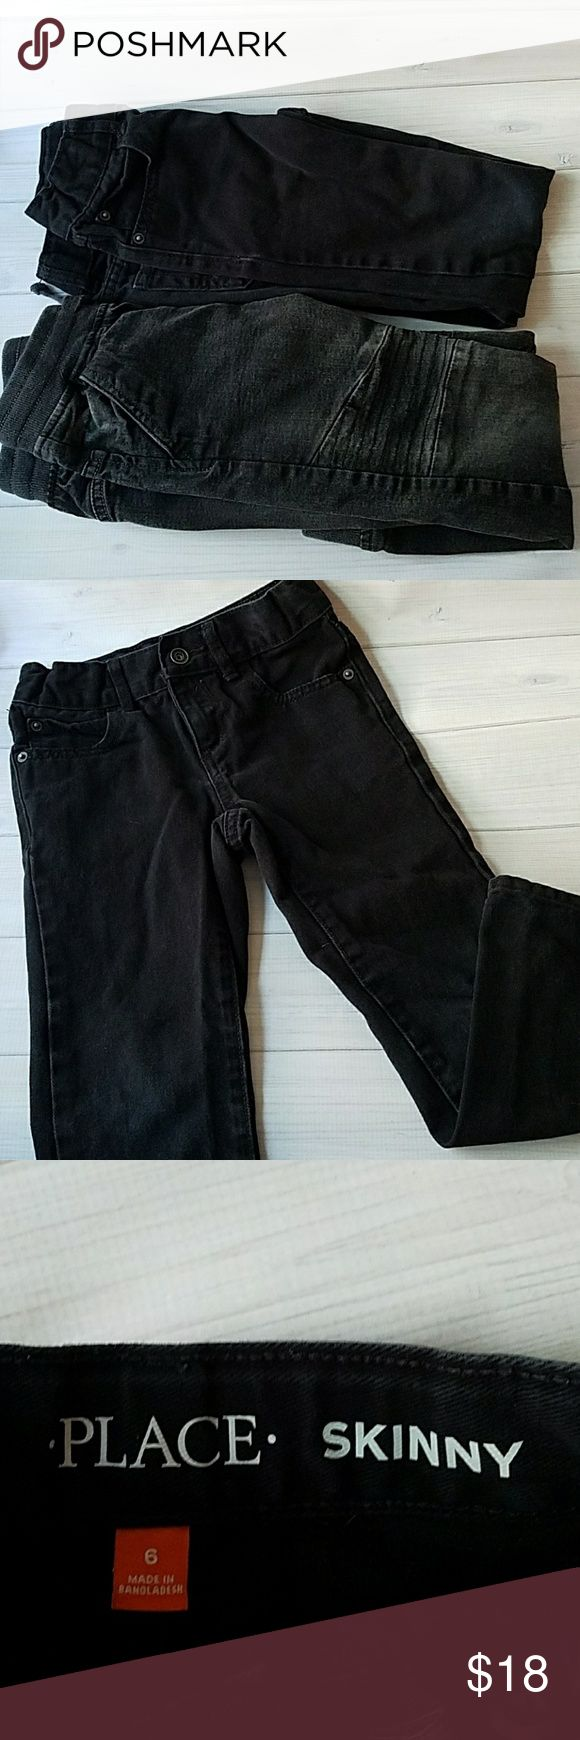 Bundle of Boys Black Jeans Skinny and Jogger Style All Black are Children's Place - Skinny Style  Size 6  Black With Drawstring are H&M - Jogger Style Size 5-6 yrs Children's Place Bottoms Jeans